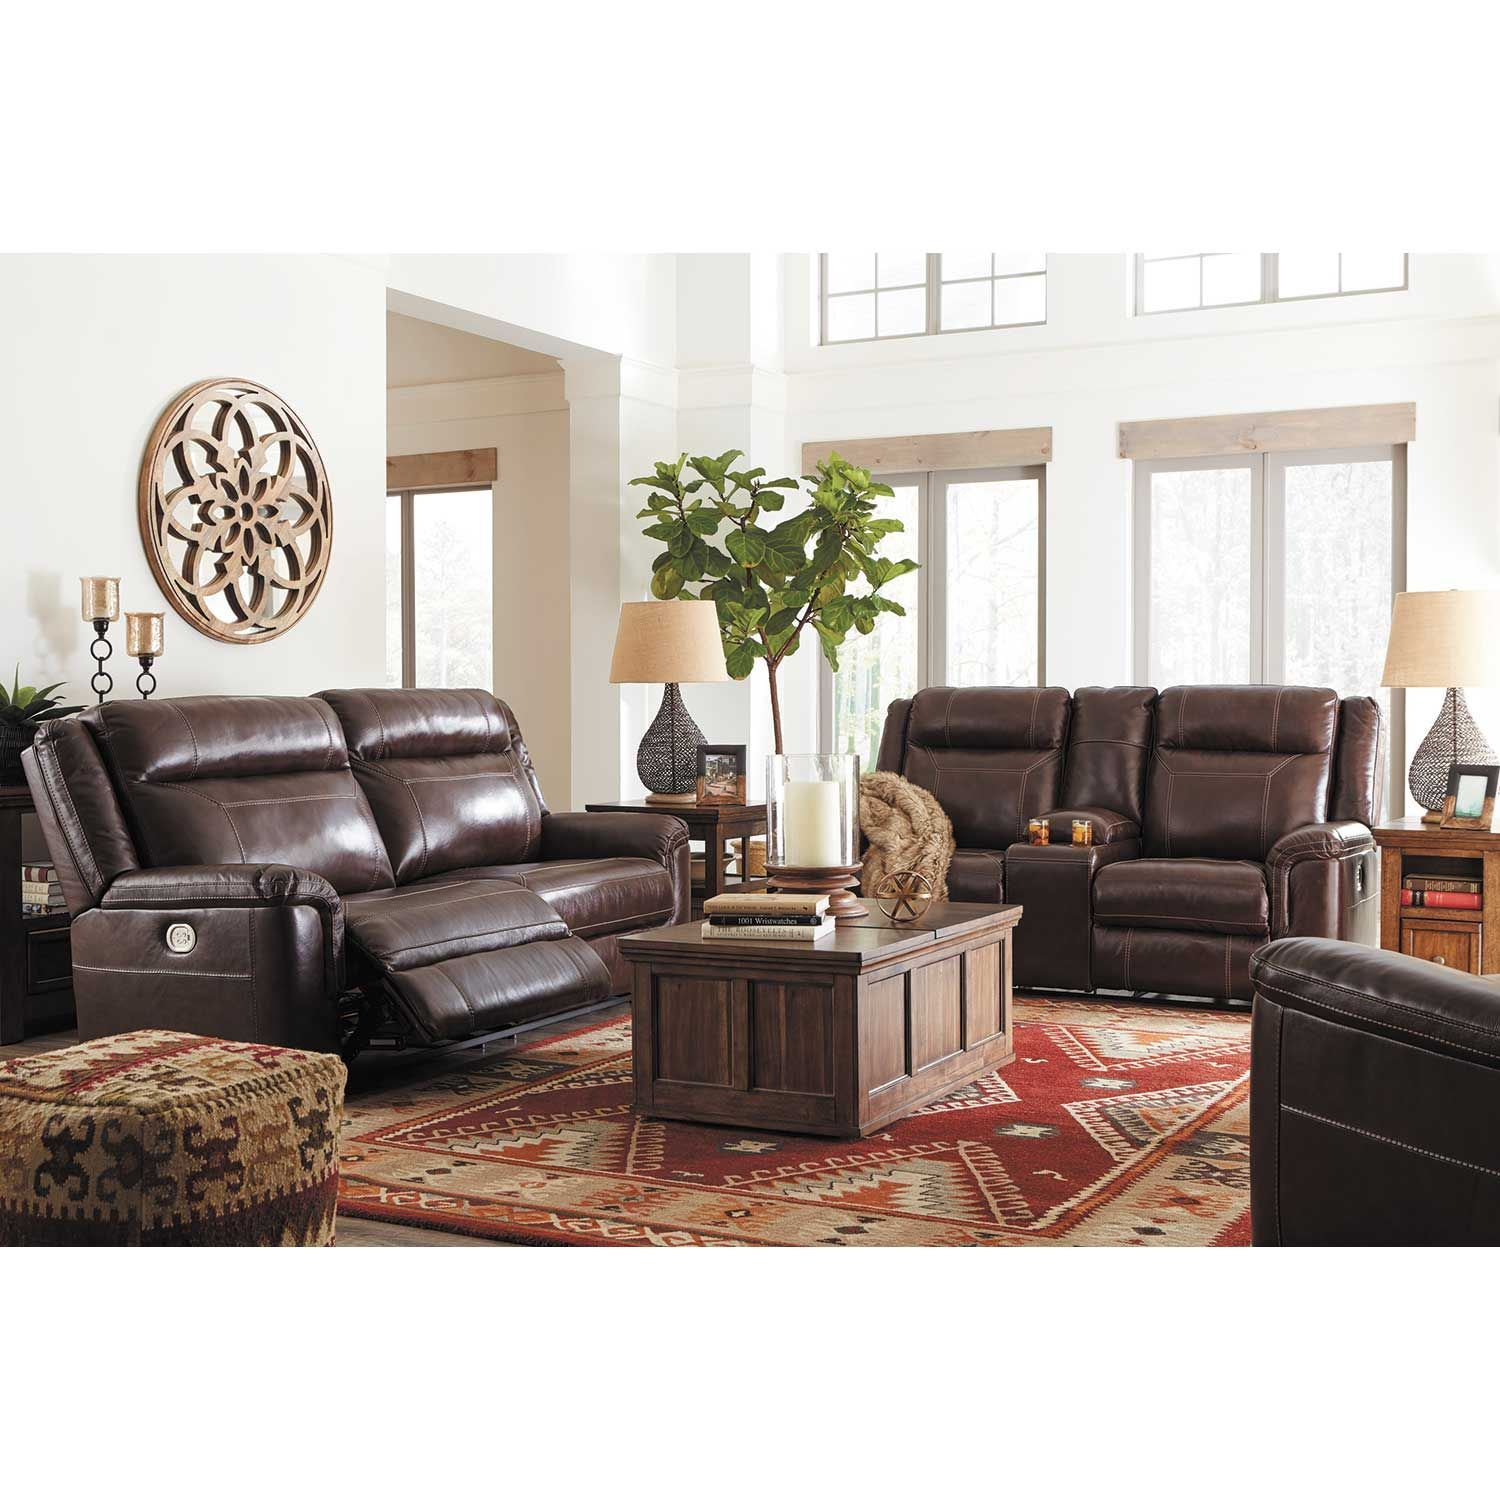 Ashley Furniture Manufacturing: Wyline Leather Power Reclining Sofa With Adjustable